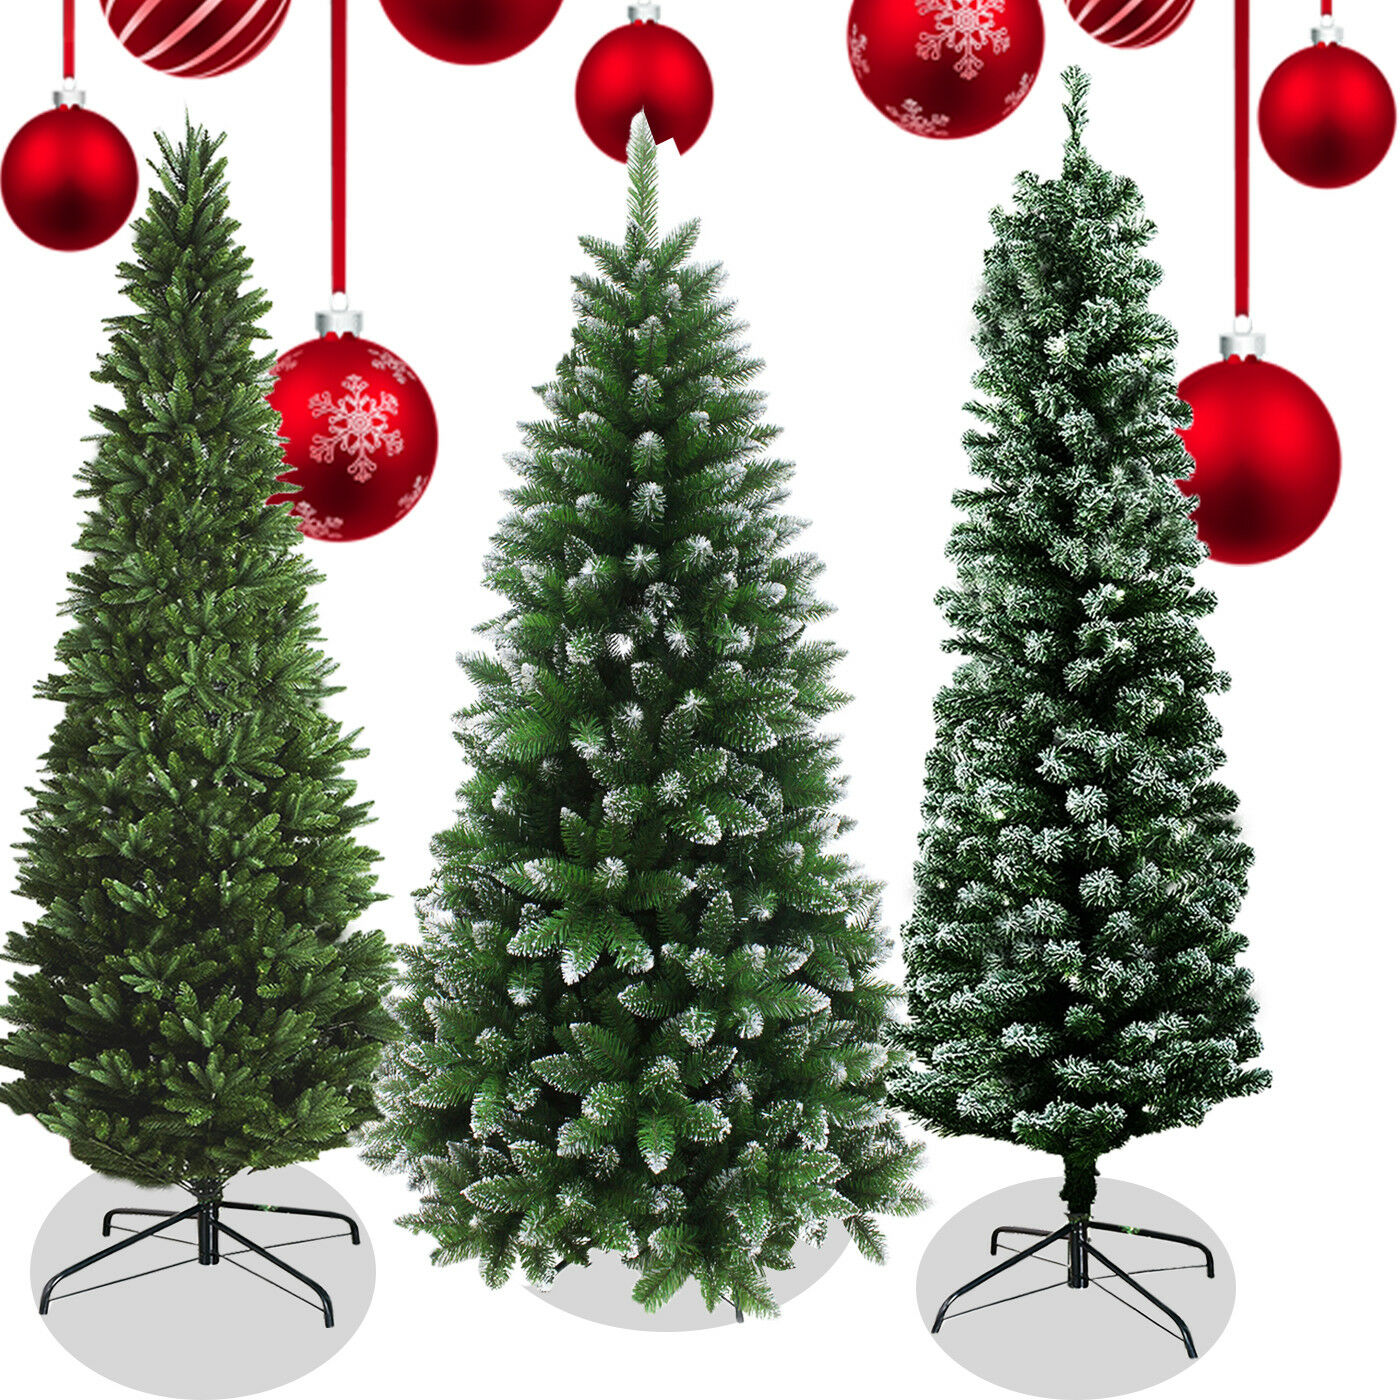 Frosted Slim Christmas Tree: Christmas Artificial Pencil Slim Frosted Snow Tips Metal